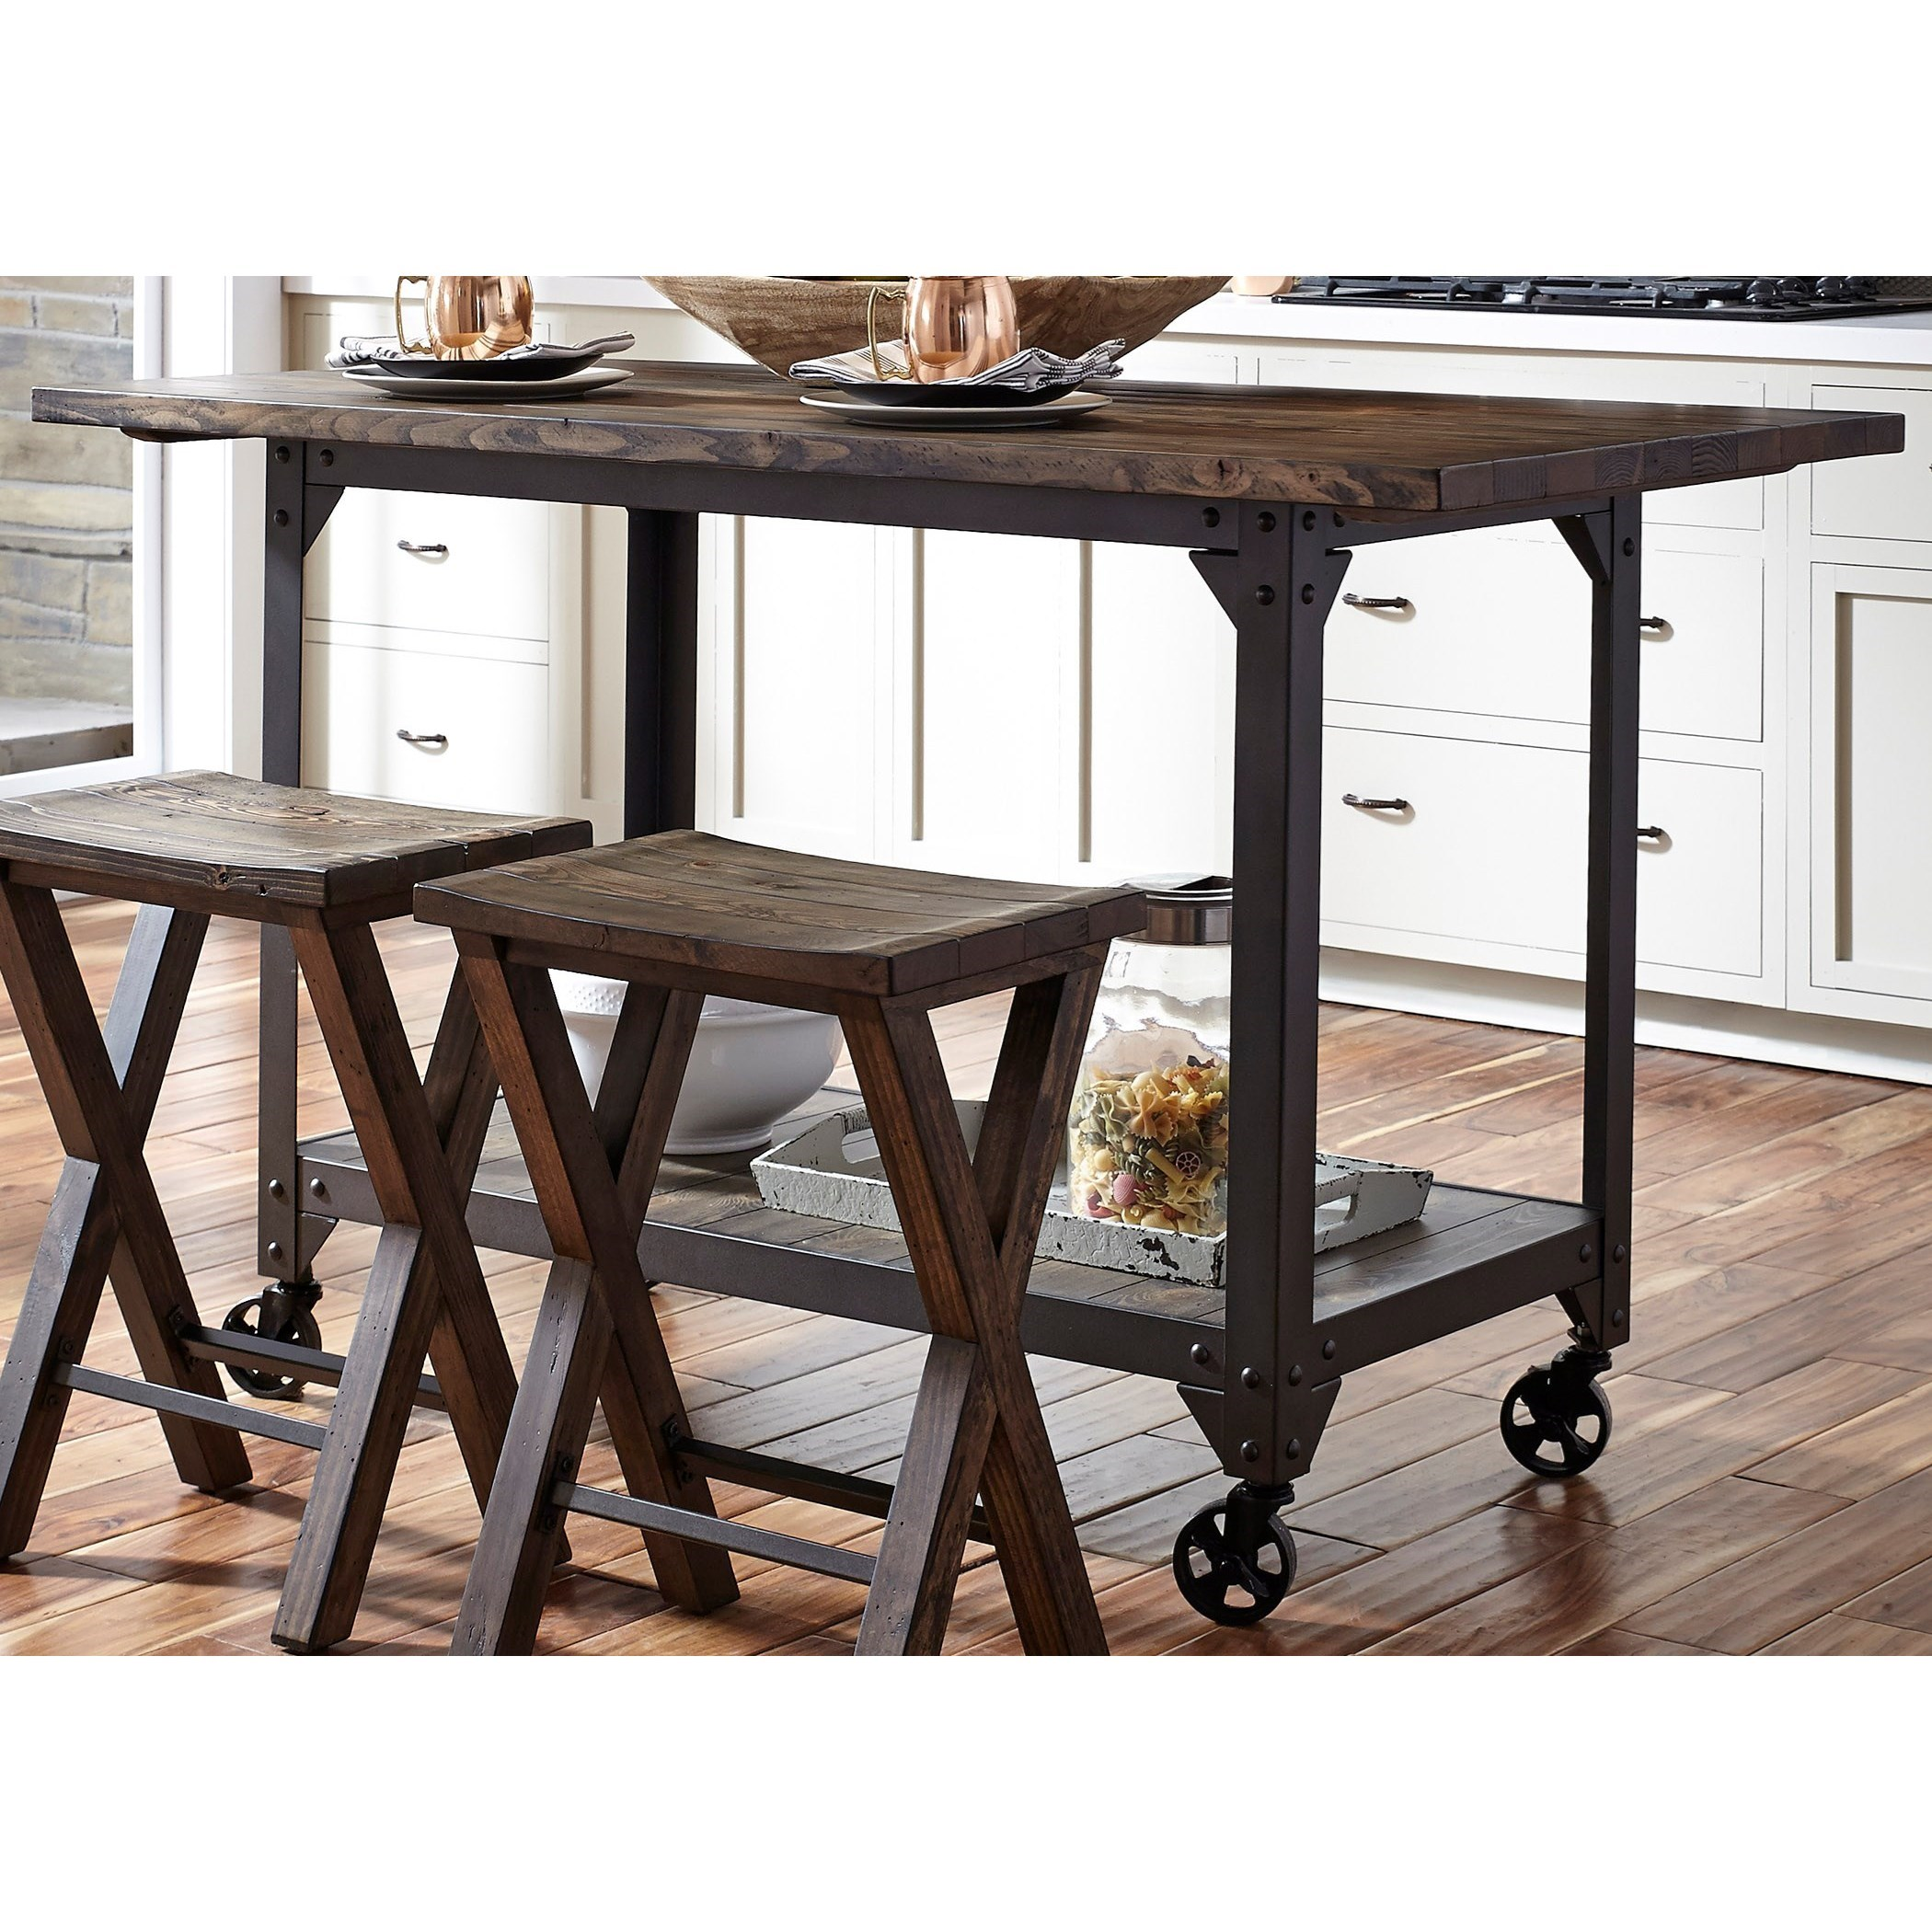 Counter Height Kitchen Island with Industrial Casters